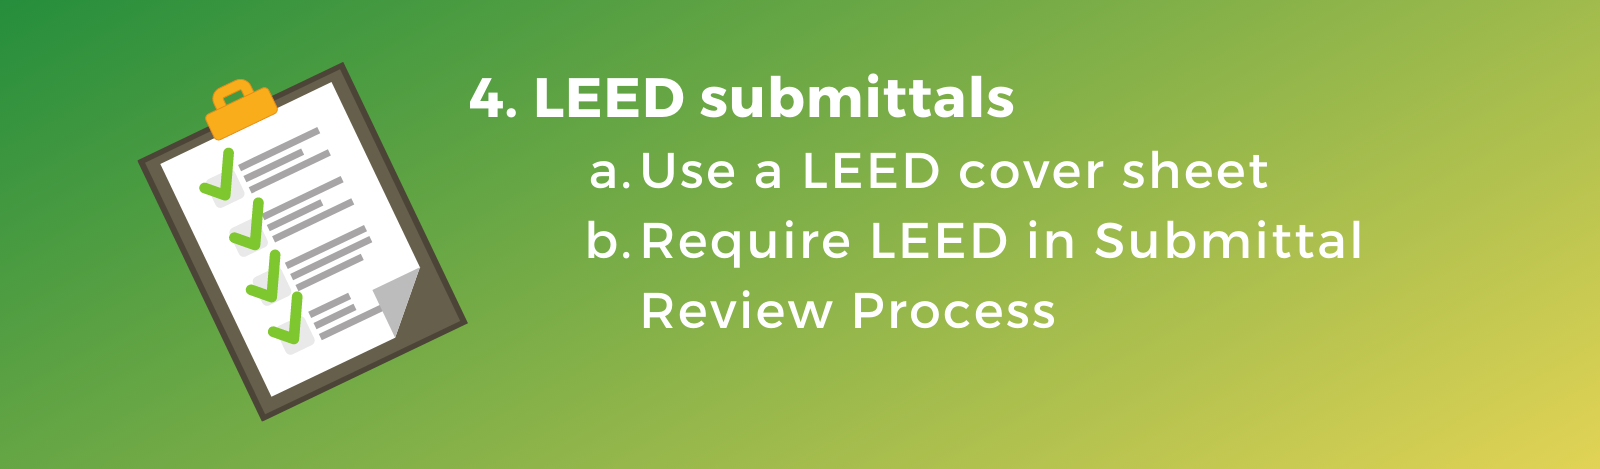 ultimate-guide-to-LEED-v4-summary-5